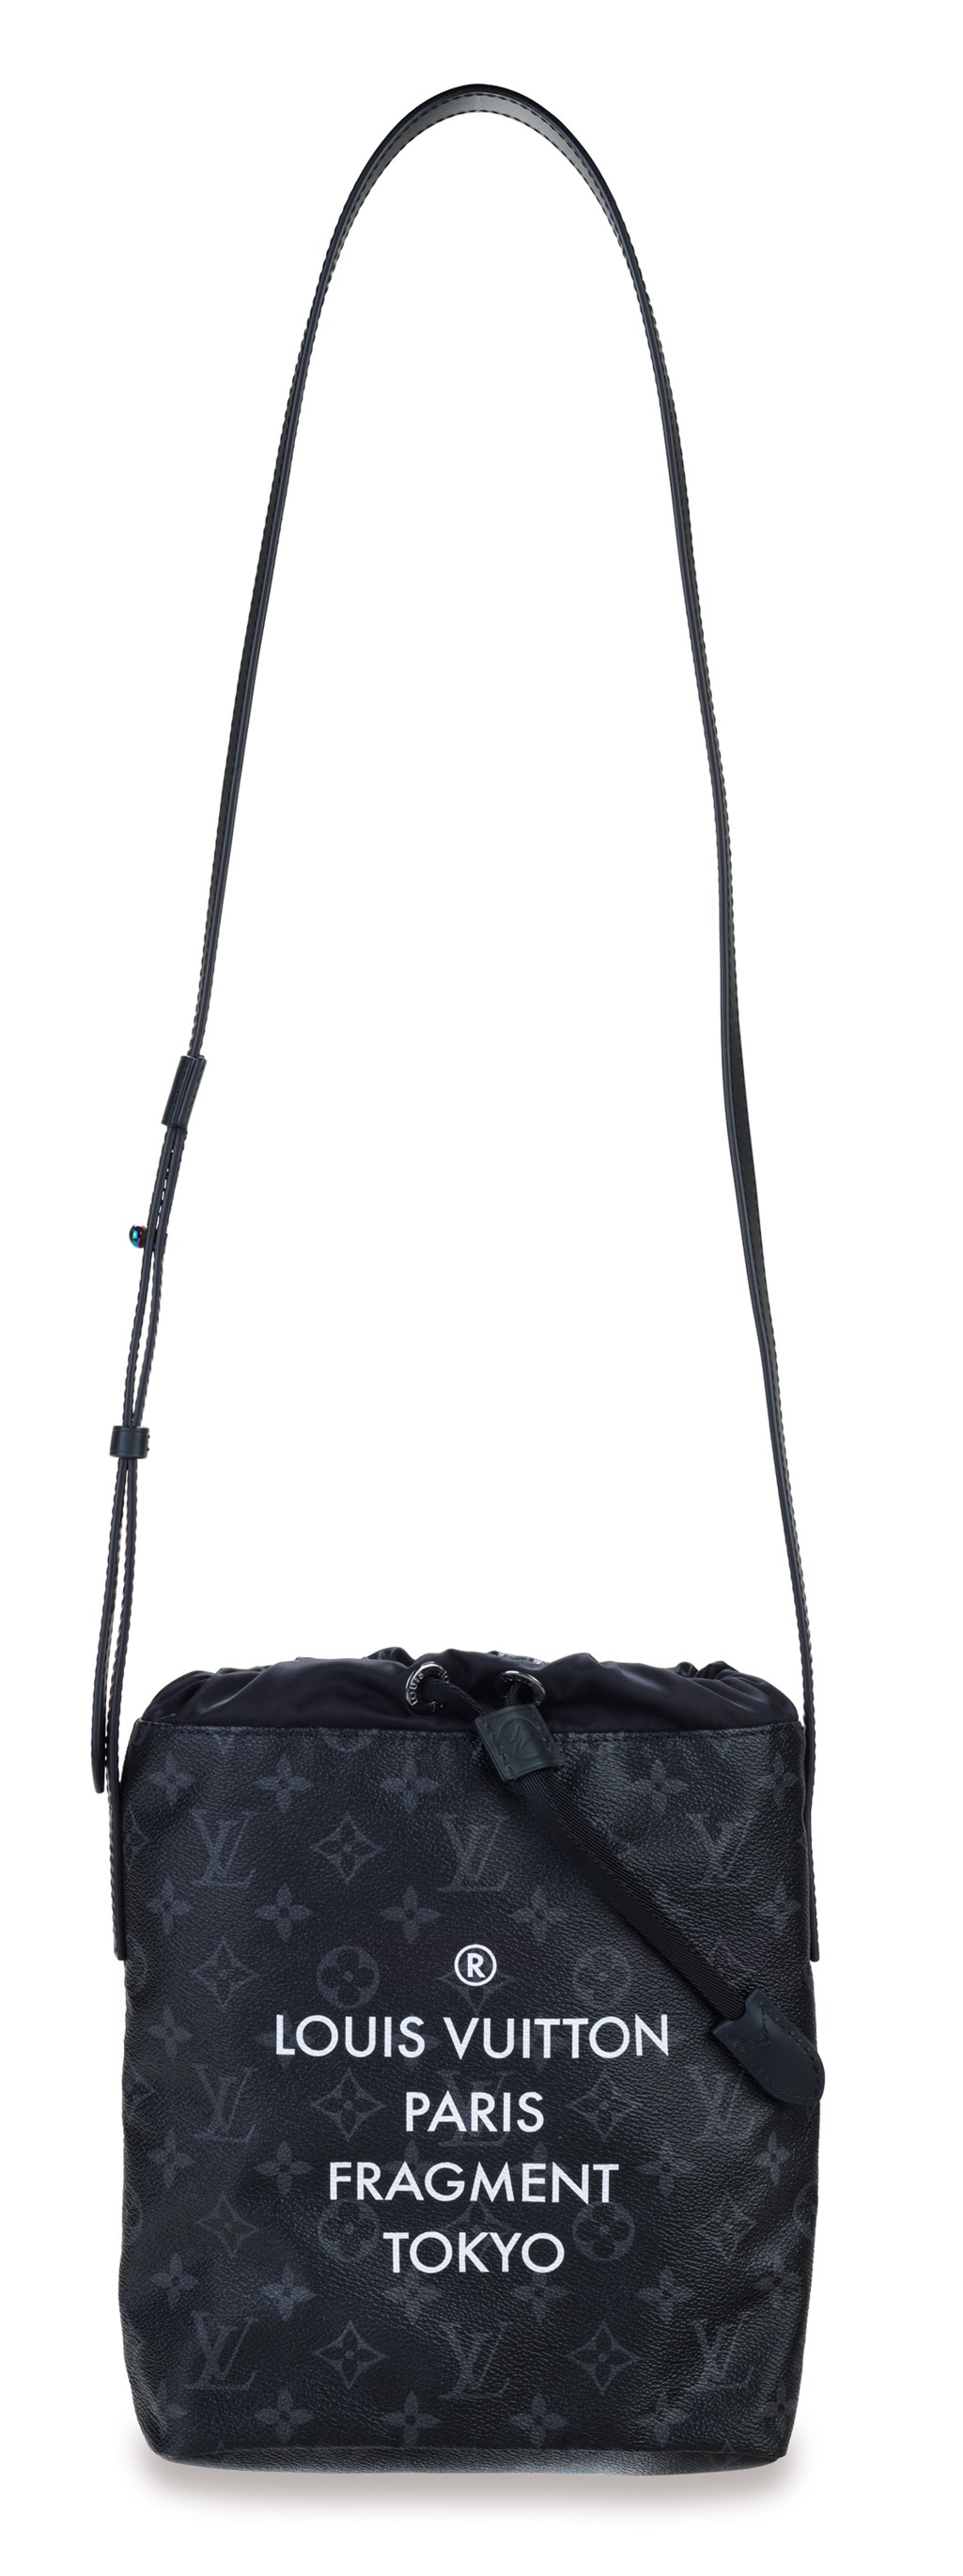 A LIMITED EDITION BLACK MONOGRAM ECLIPSE FLASH CANVAS AND NYLON NANO BAG WITH IRIDESCENT HARDWARE